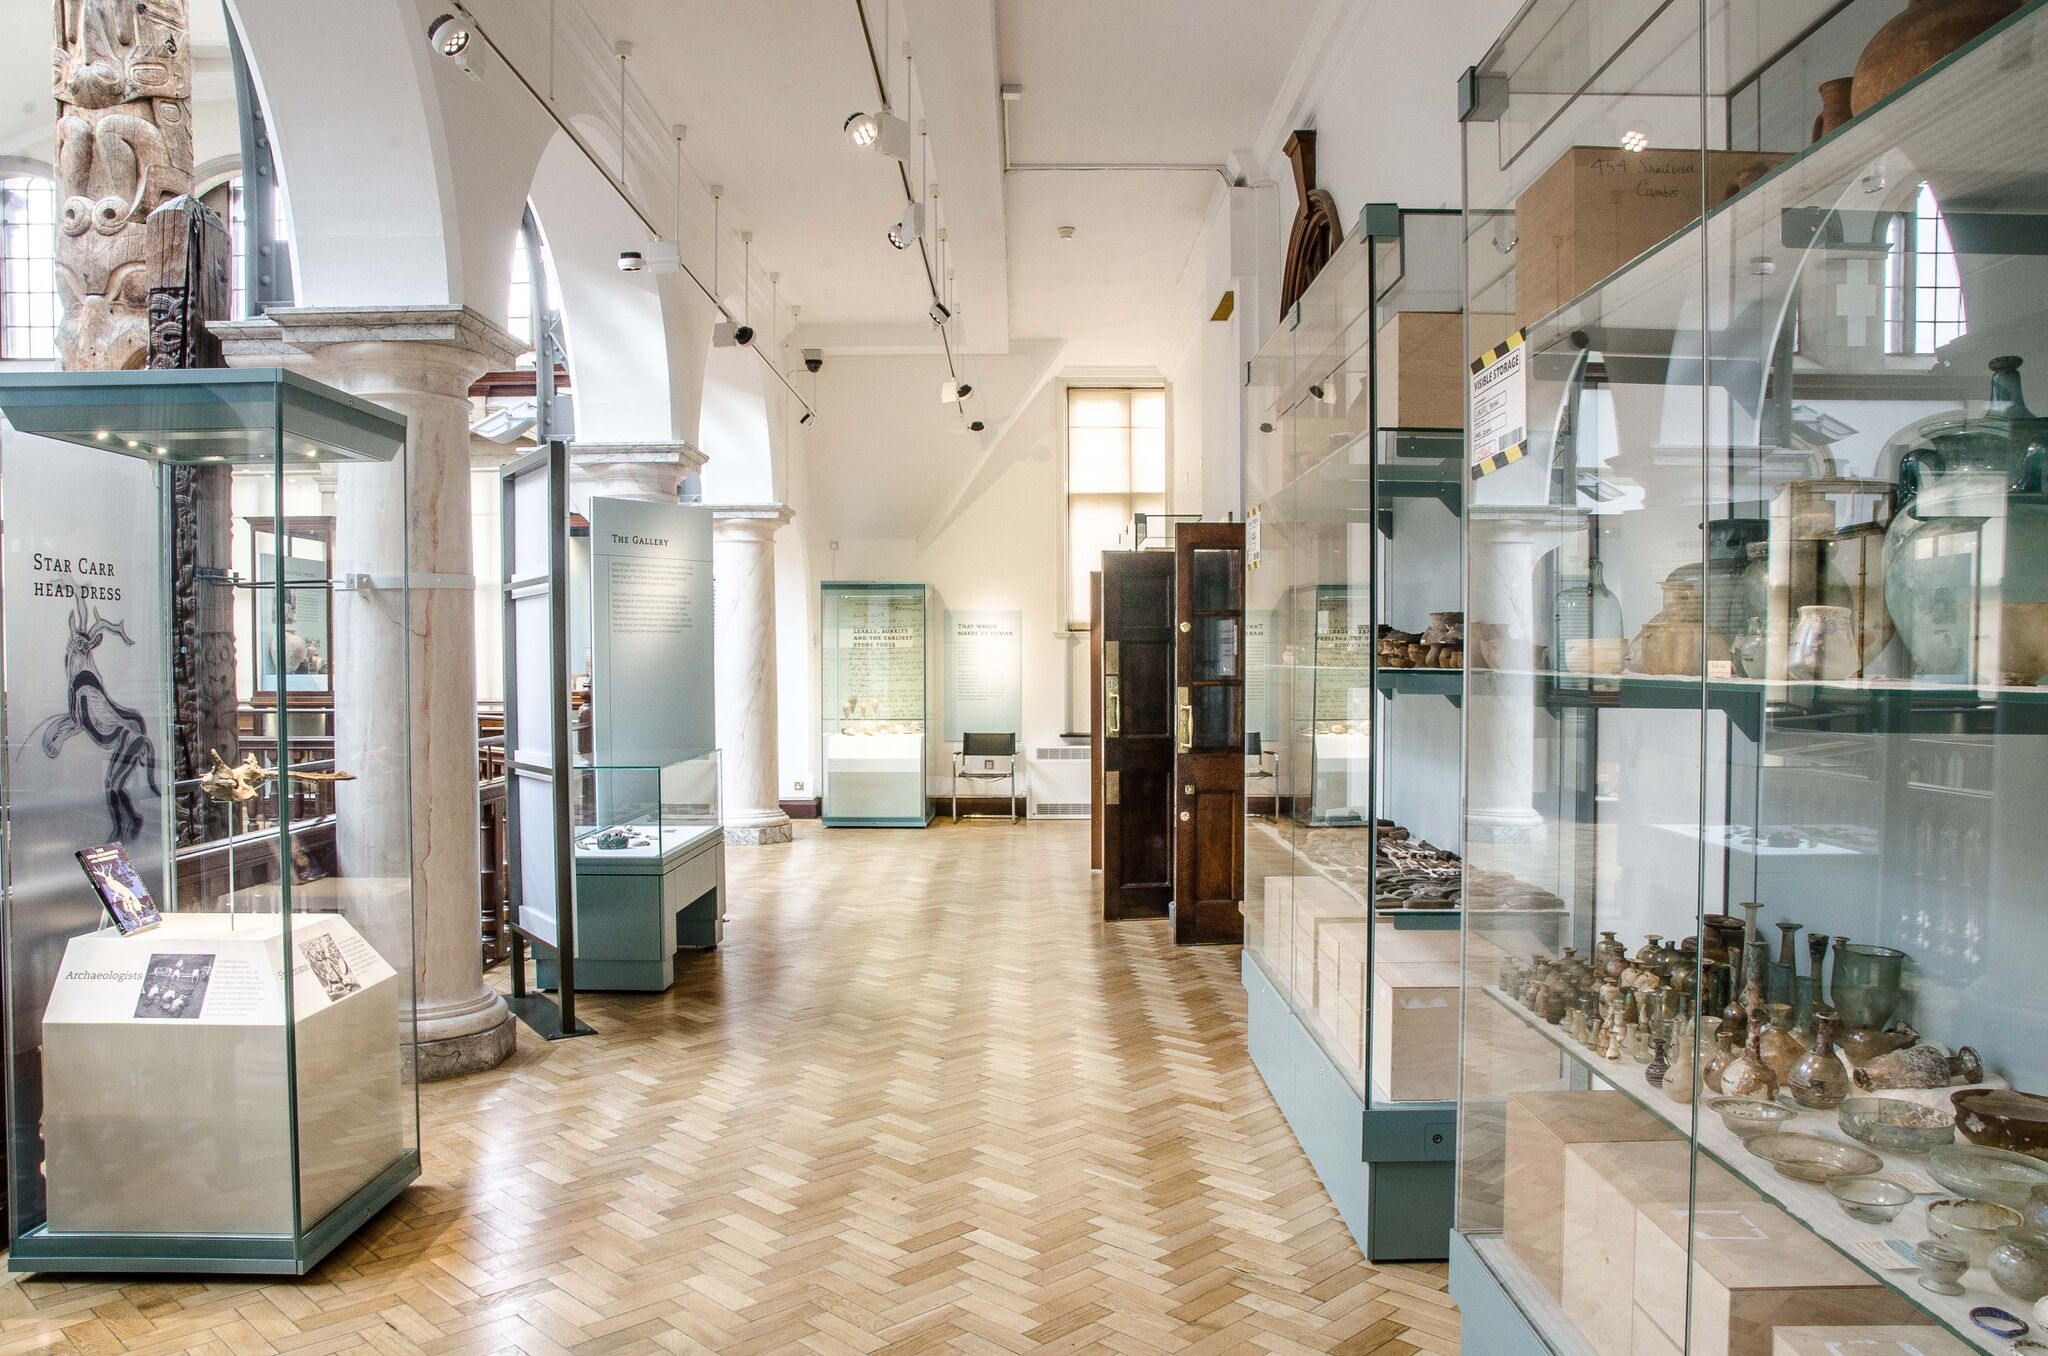 A view of part of the Andrews Gallery